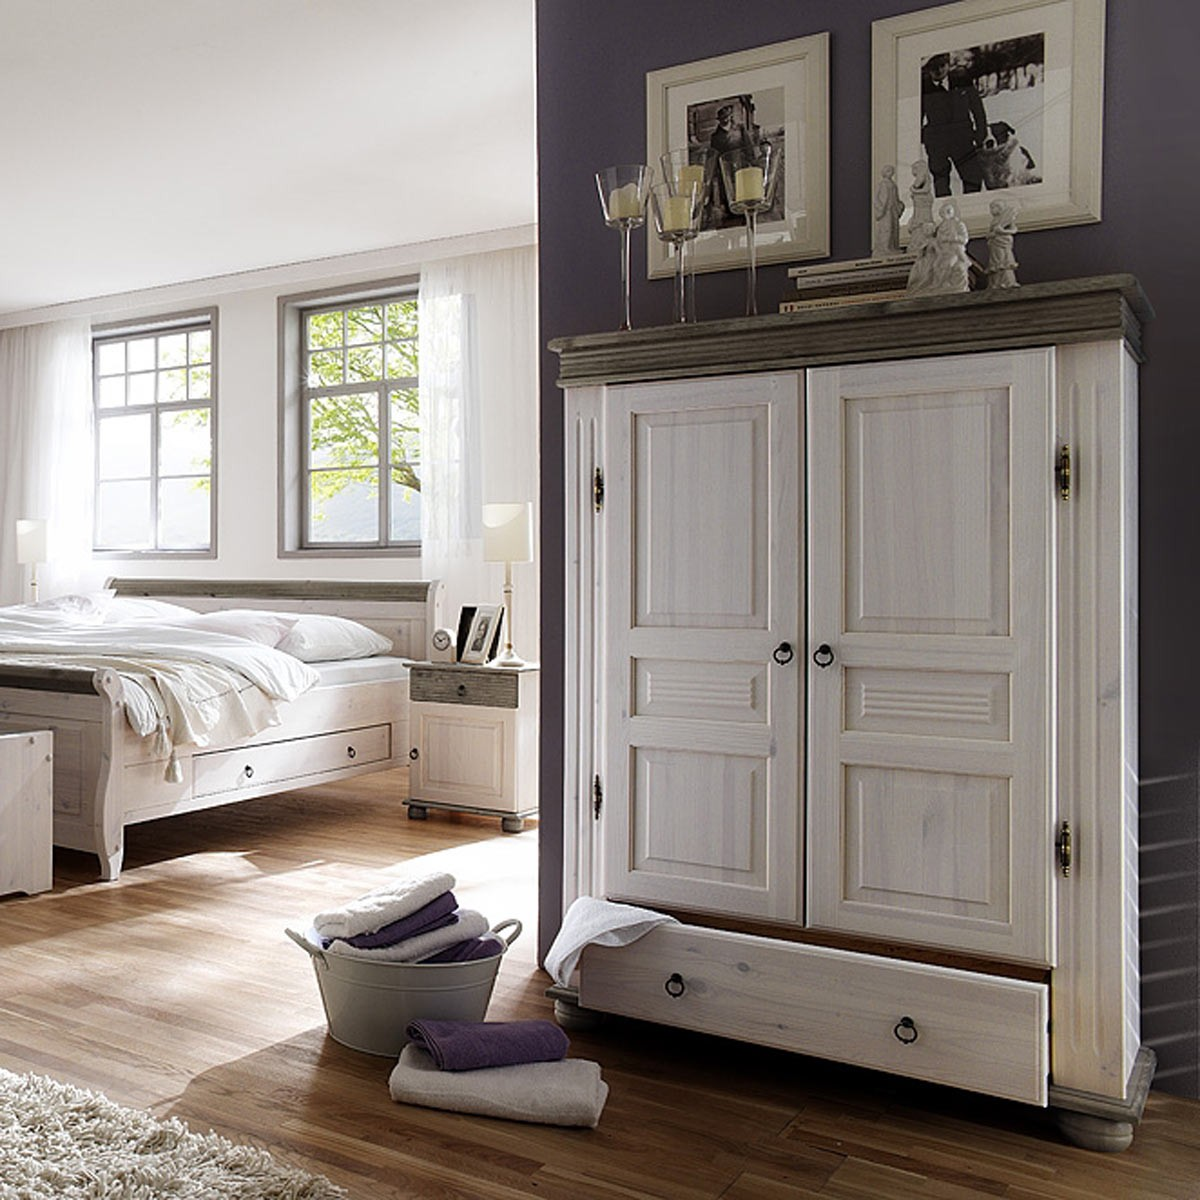 w scheschrank w schekommode w sche schrank in kiefer massiv wei lava ebay. Black Bedroom Furniture Sets. Home Design Ideas